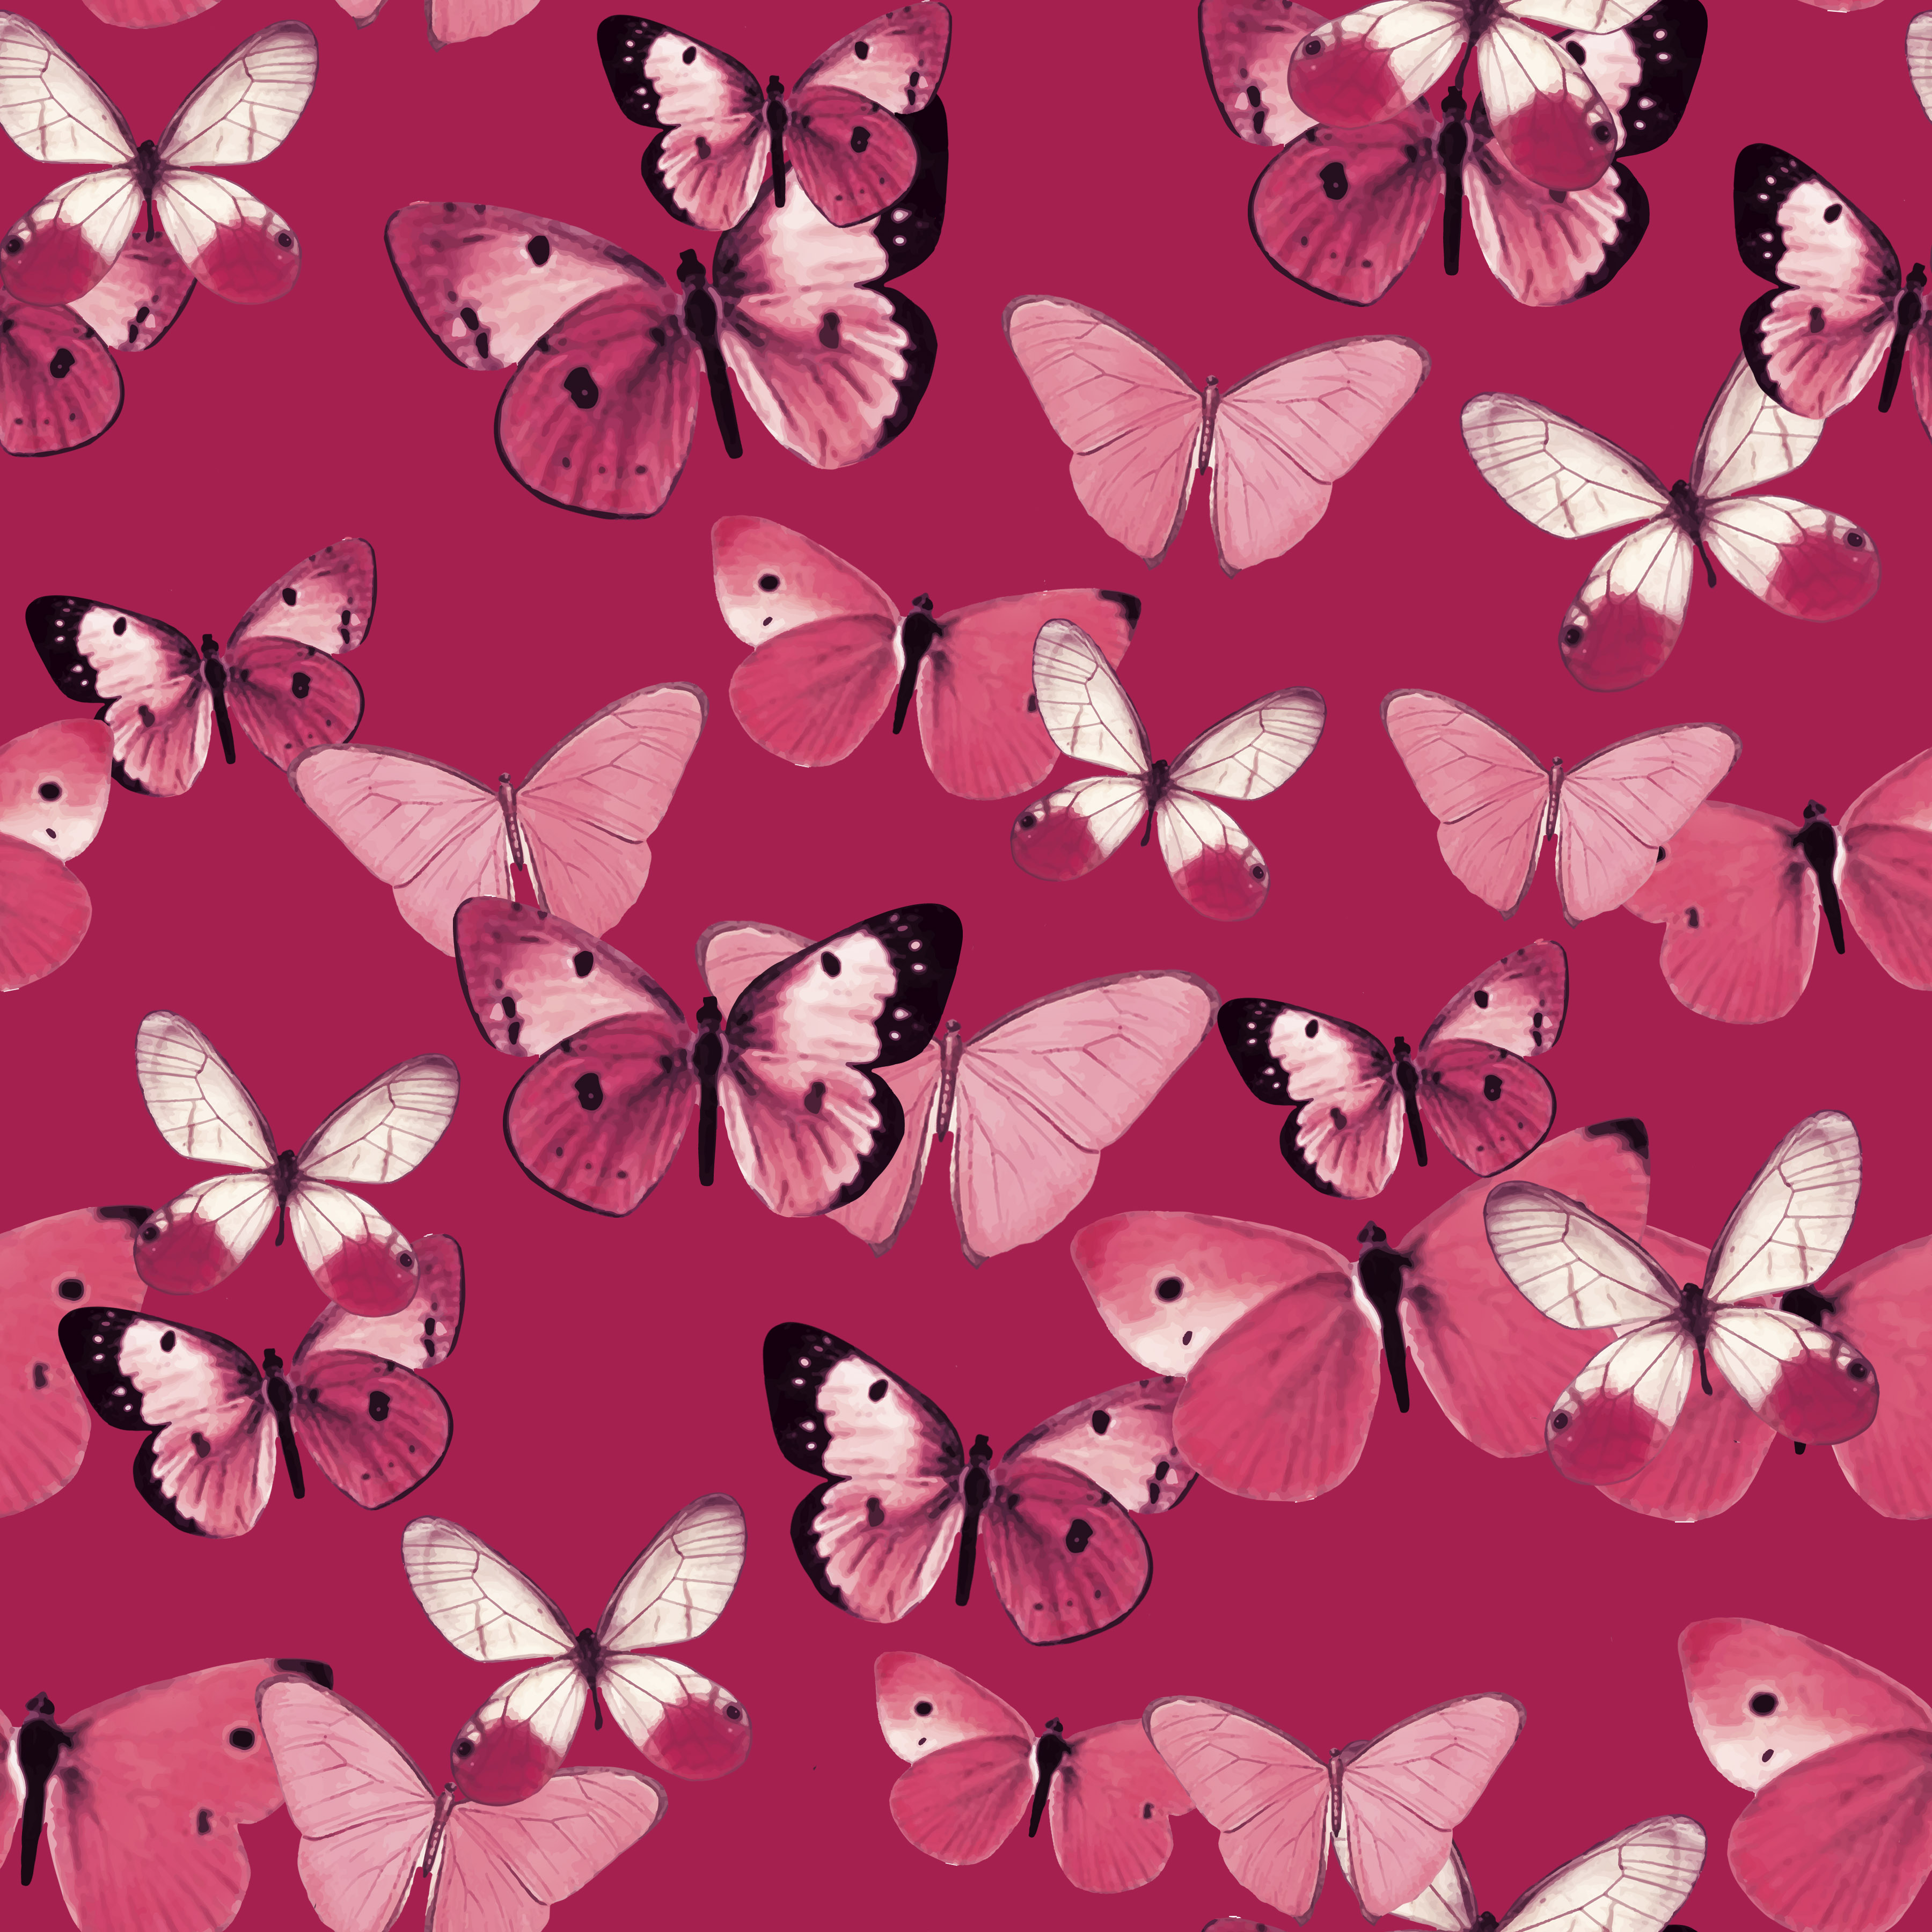 LG pink butterflies fill on dkpink